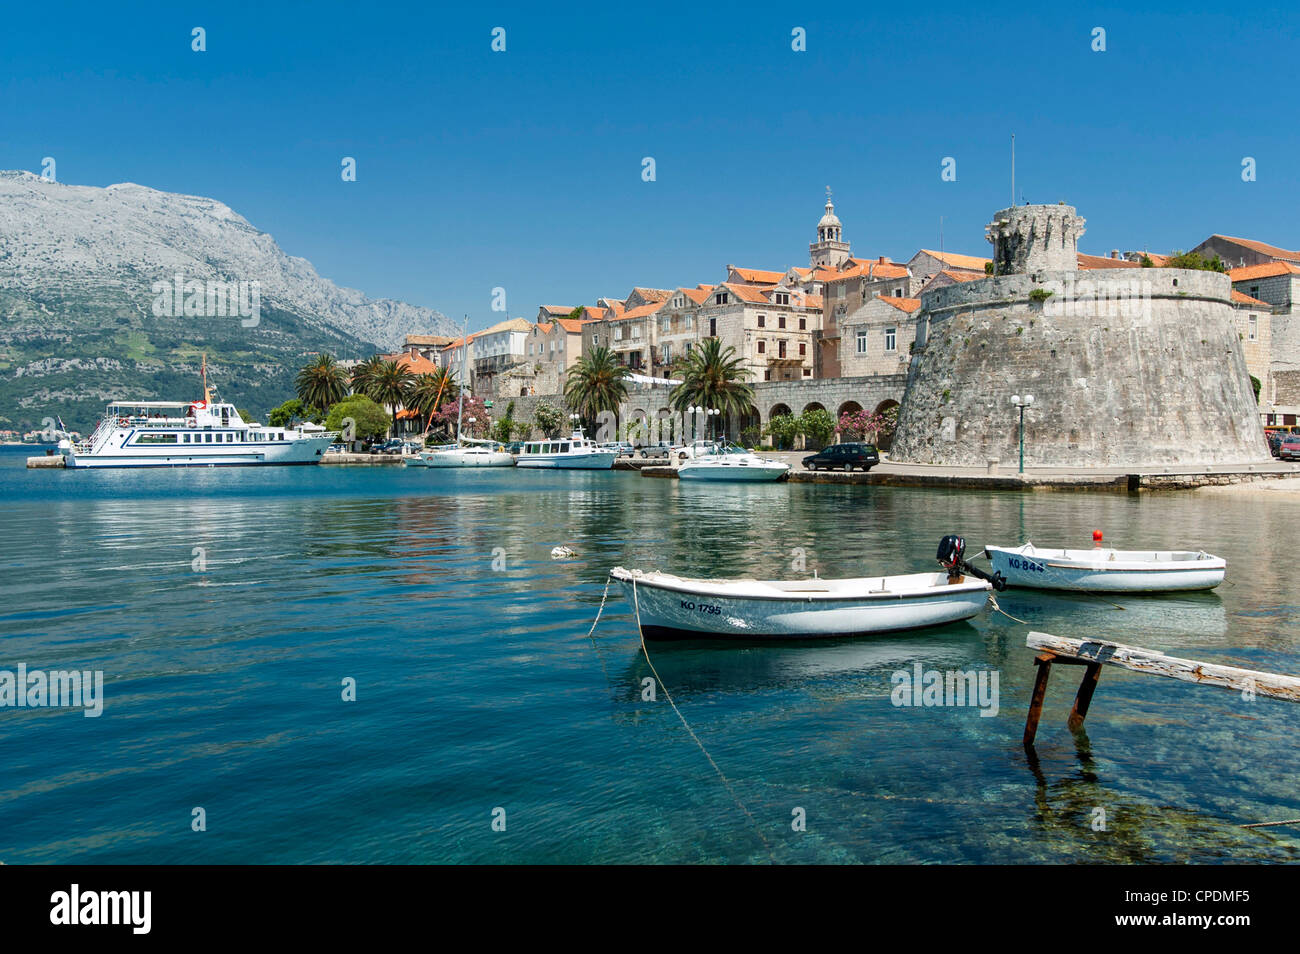 Korcula island harbour, Croatia, Europe - Stock Image